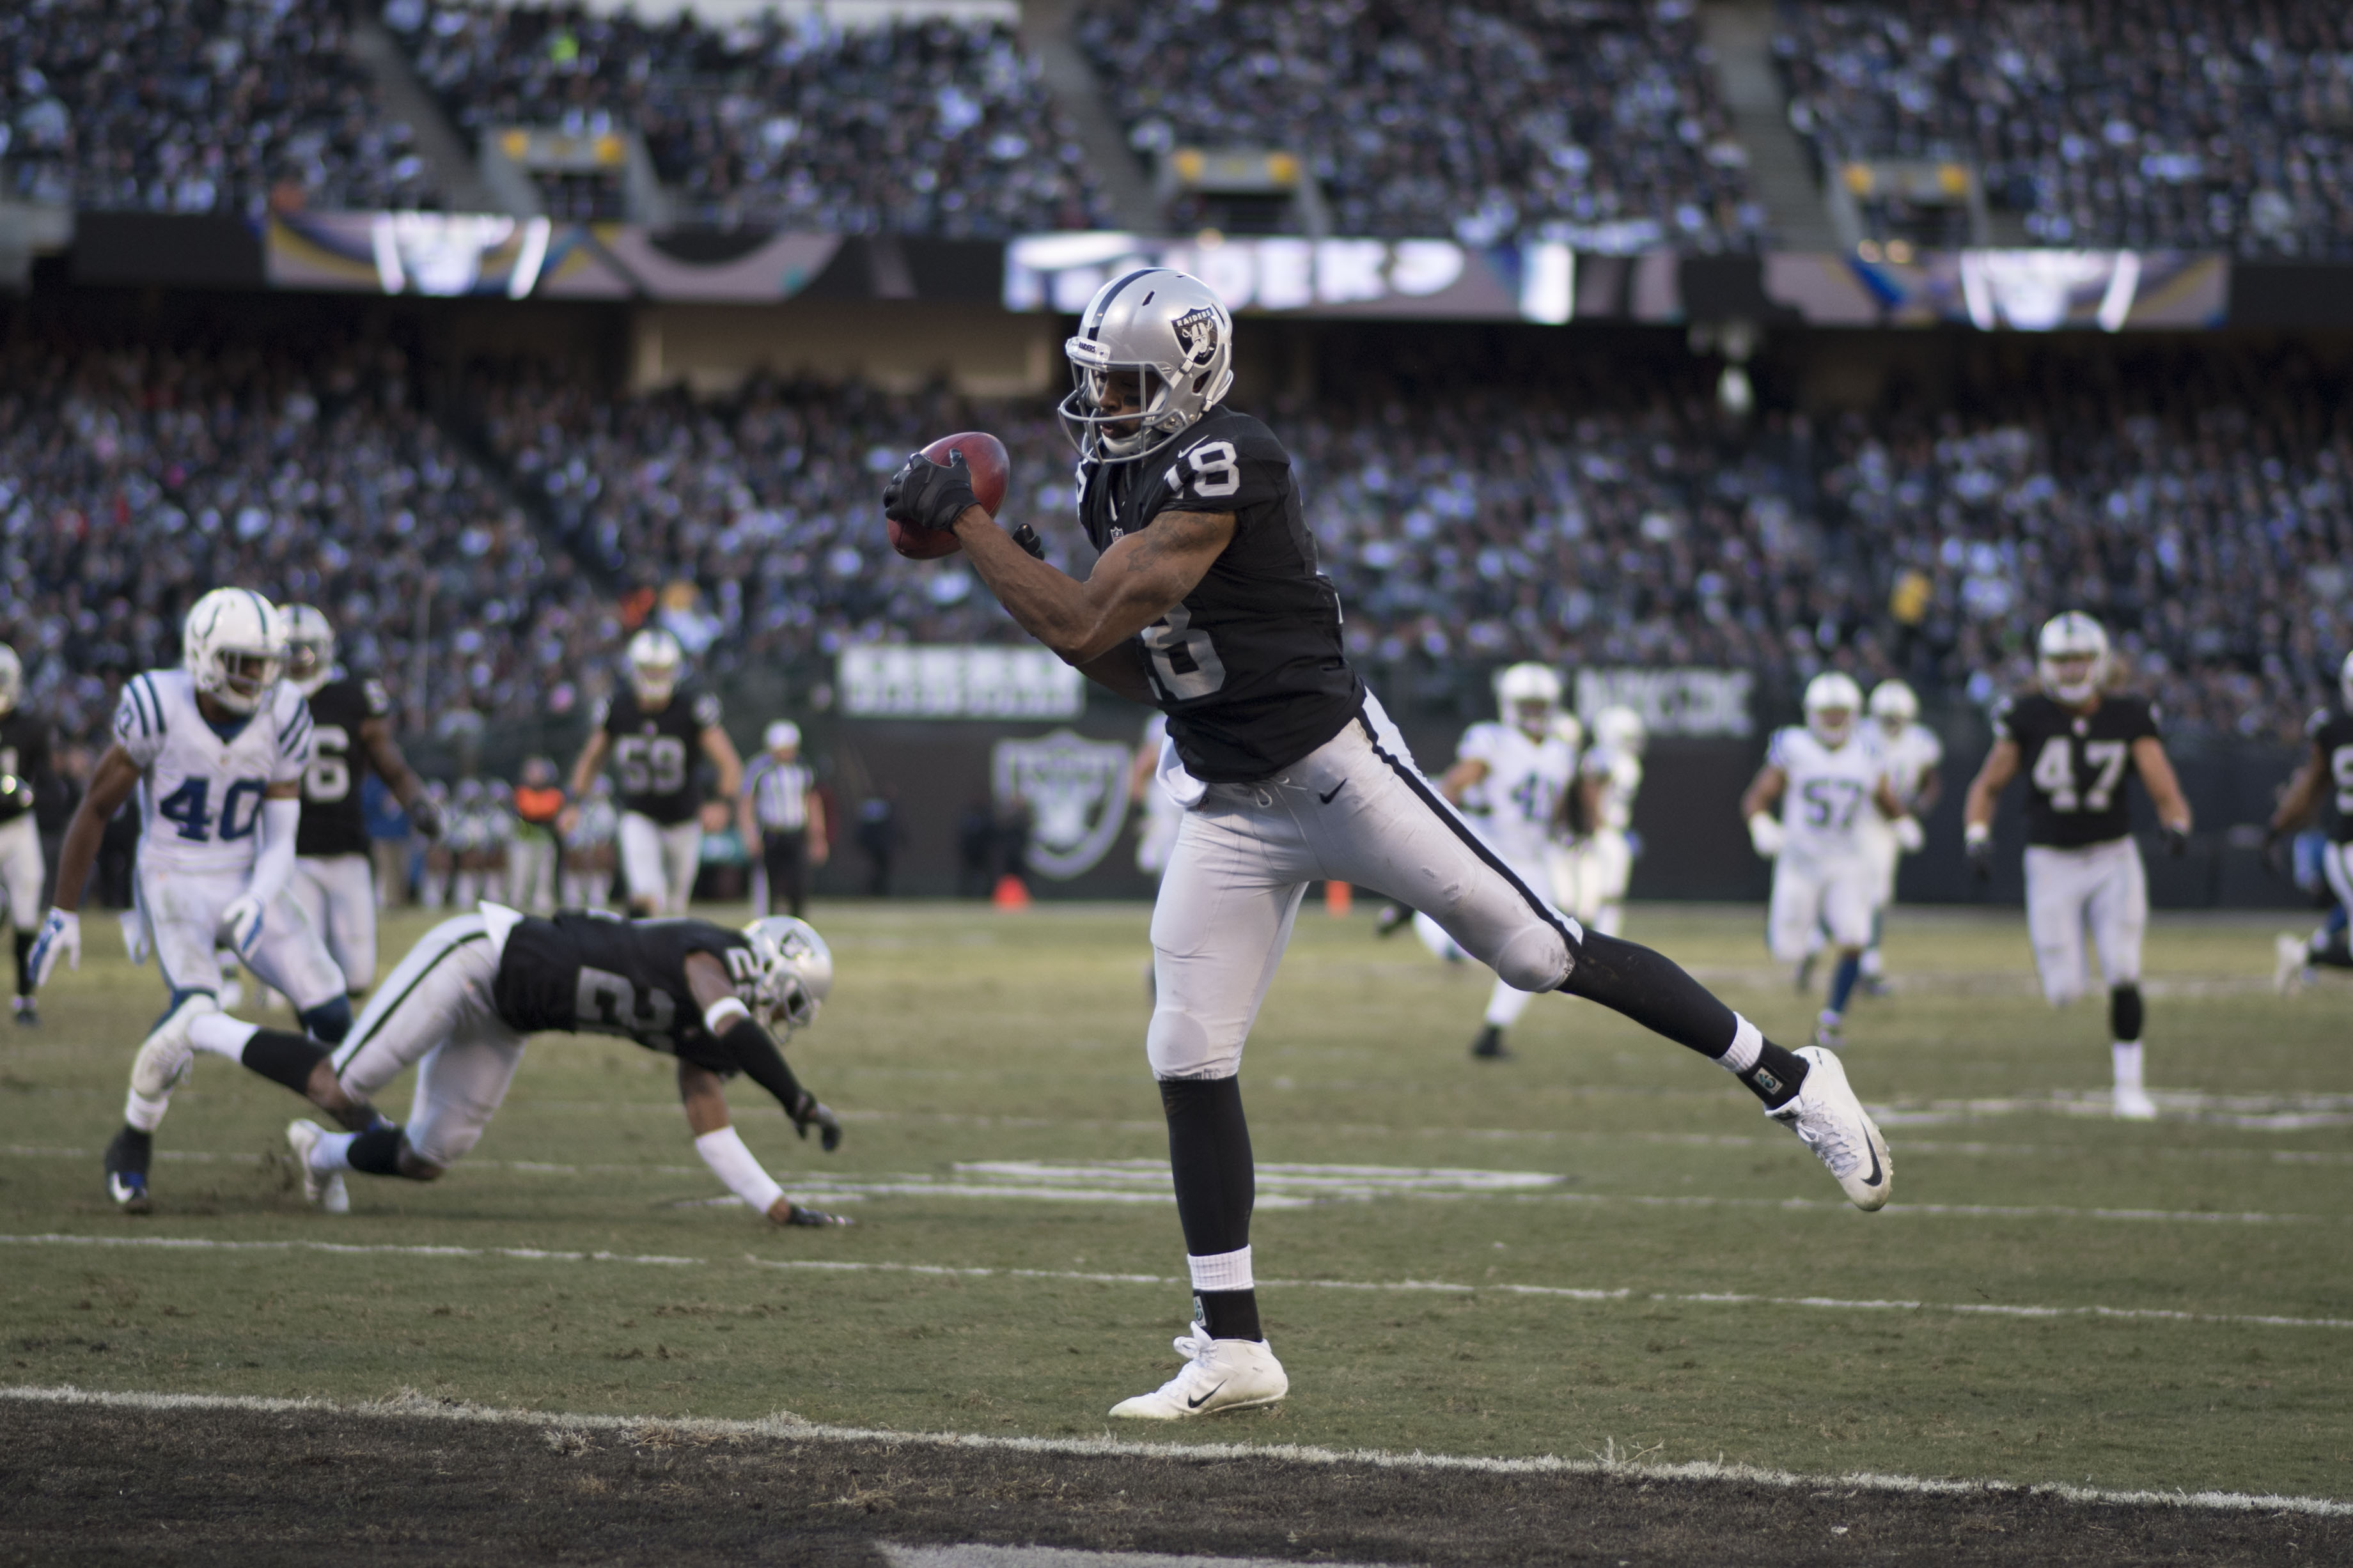 9767546-nfl-indianapolis-colts-at-oakland-raiders